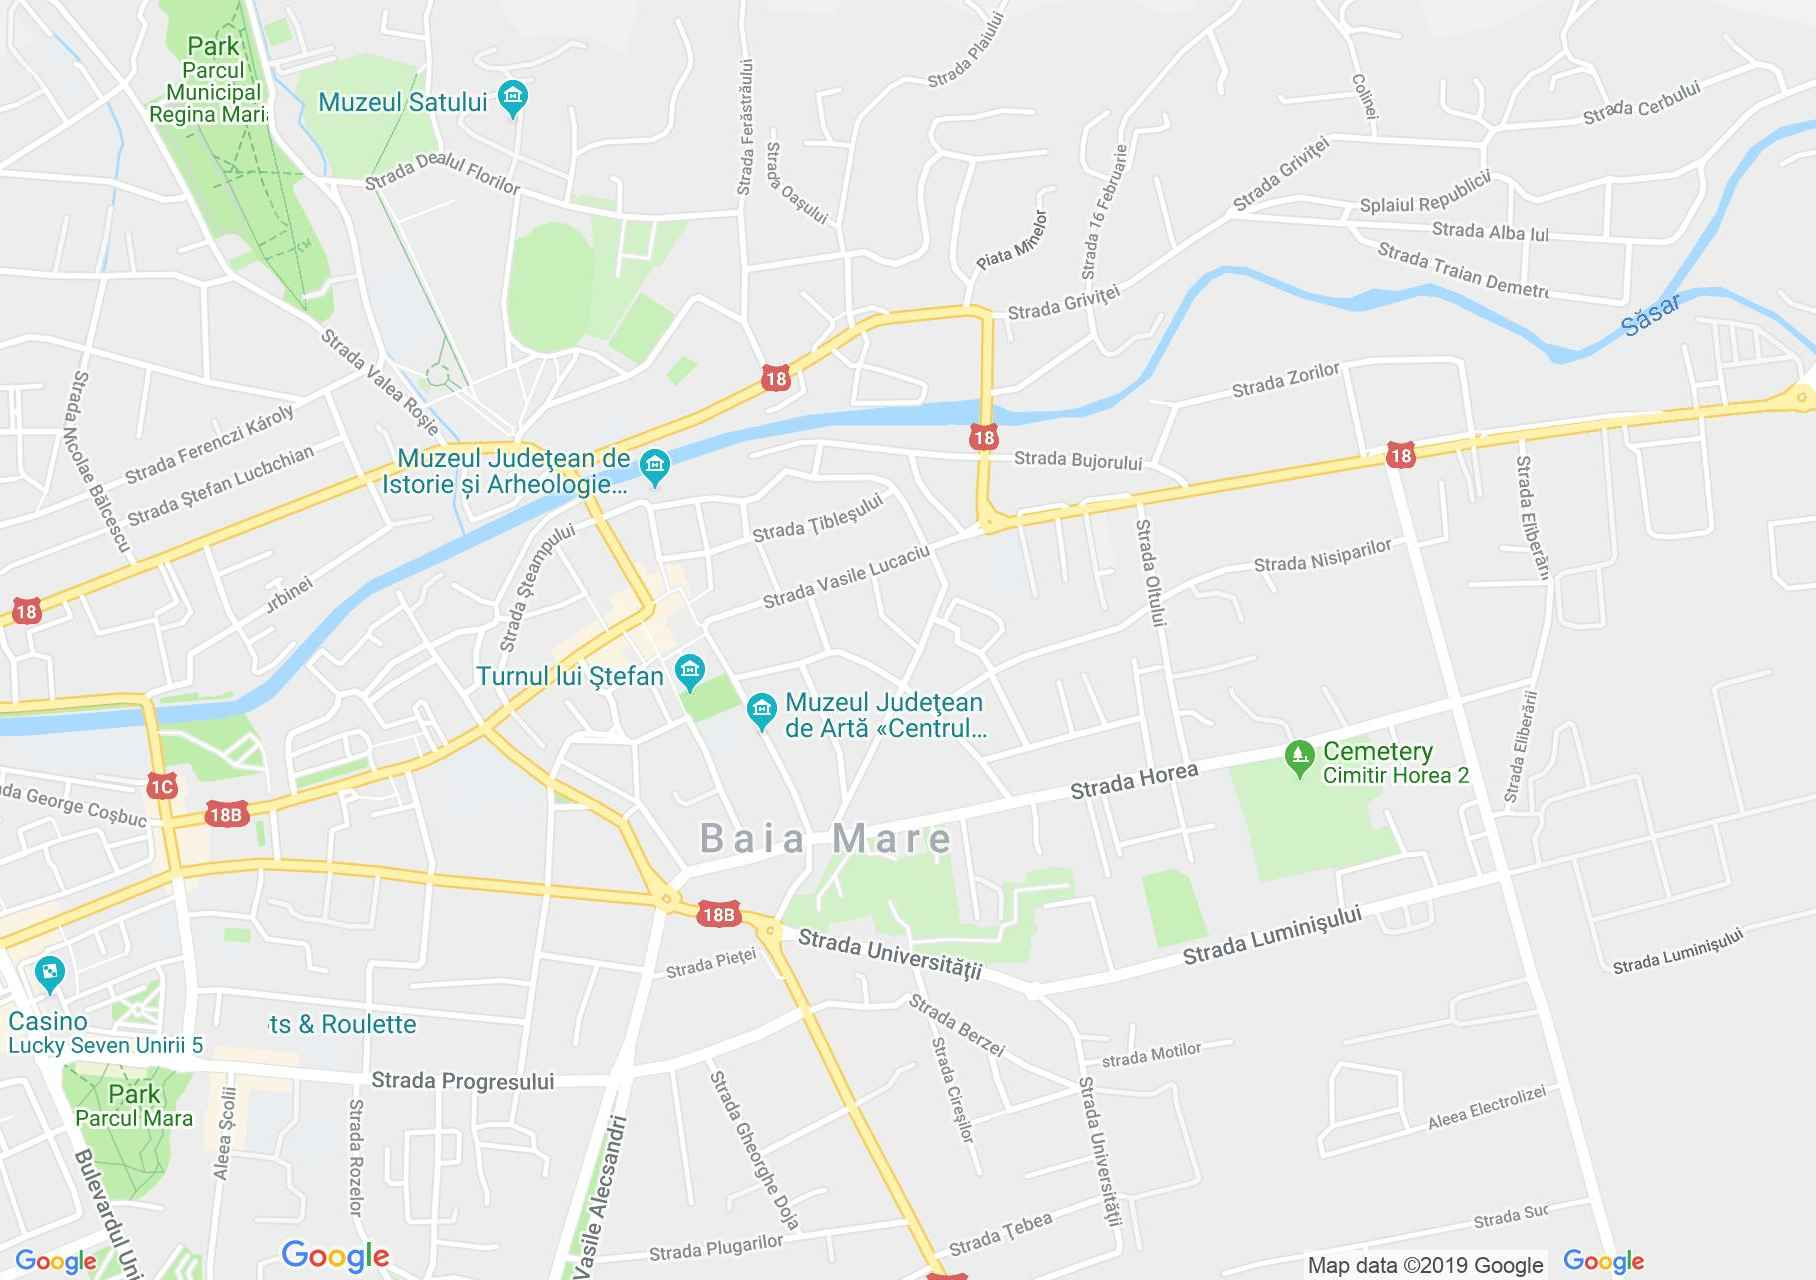 Map of Baia Mare: Baia Mare